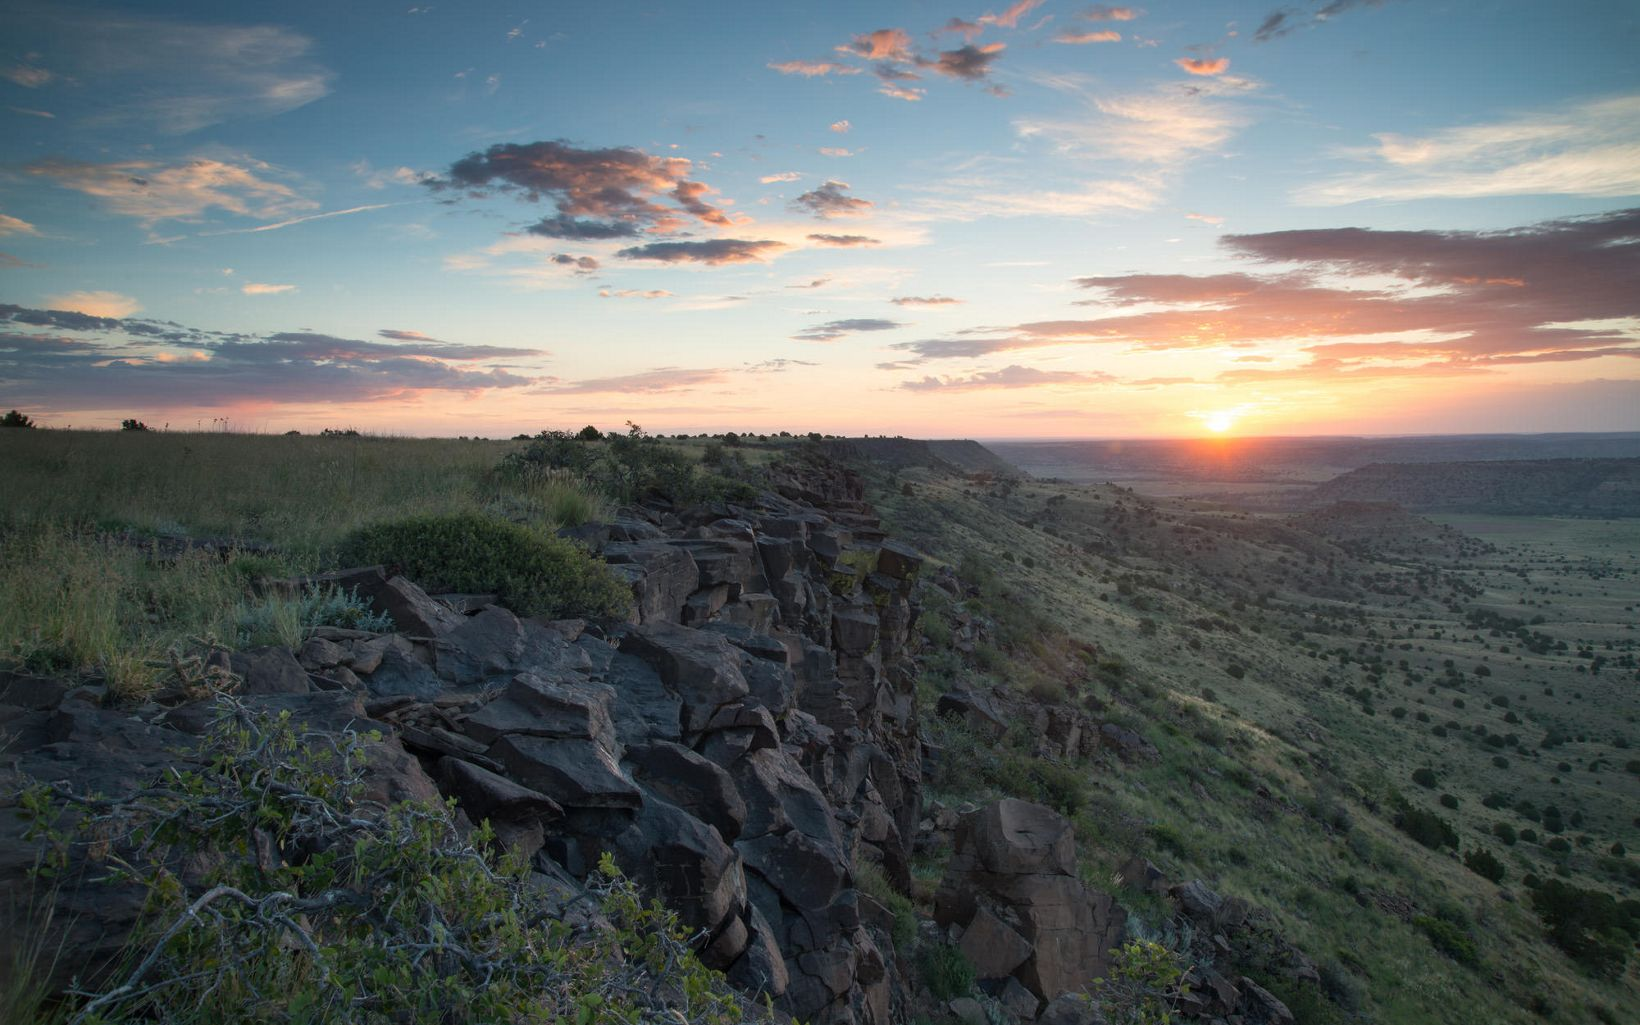 Black Mesa State Park & Nature Preserve are home to the darkest skies around.